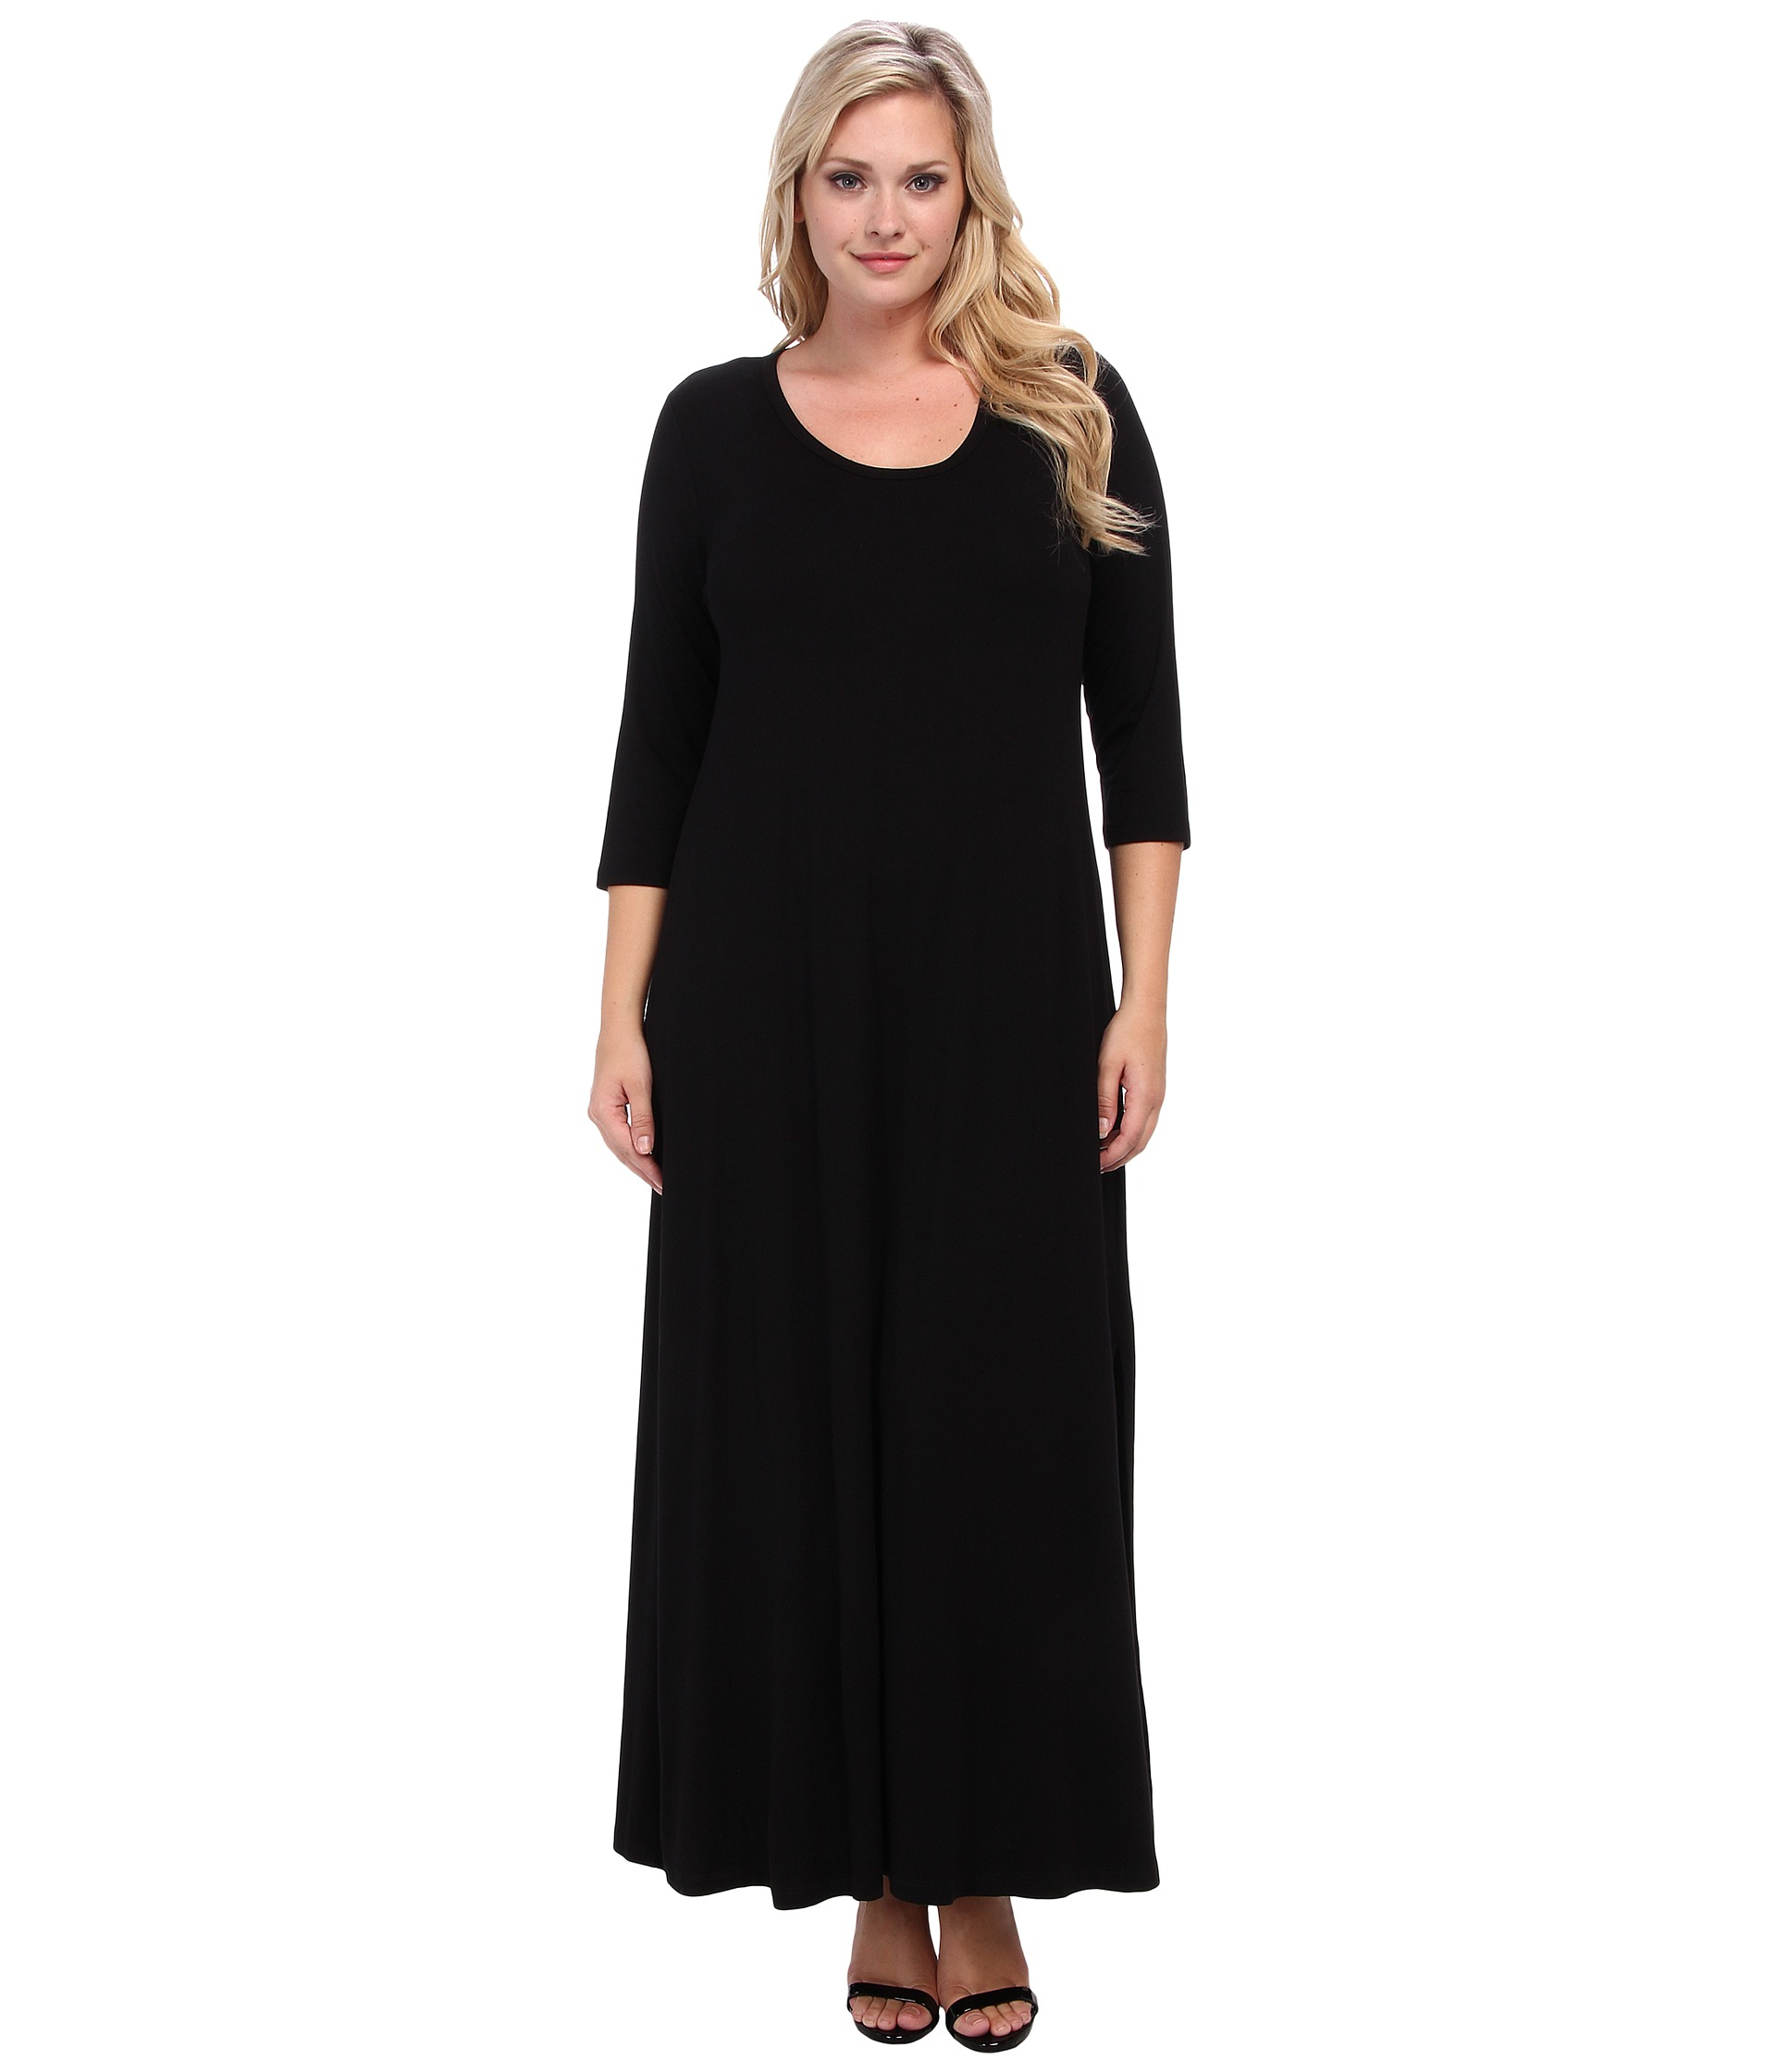 Dillards Plus Size Designer Women's Clothing Plus Size Long Sleeve Maxi